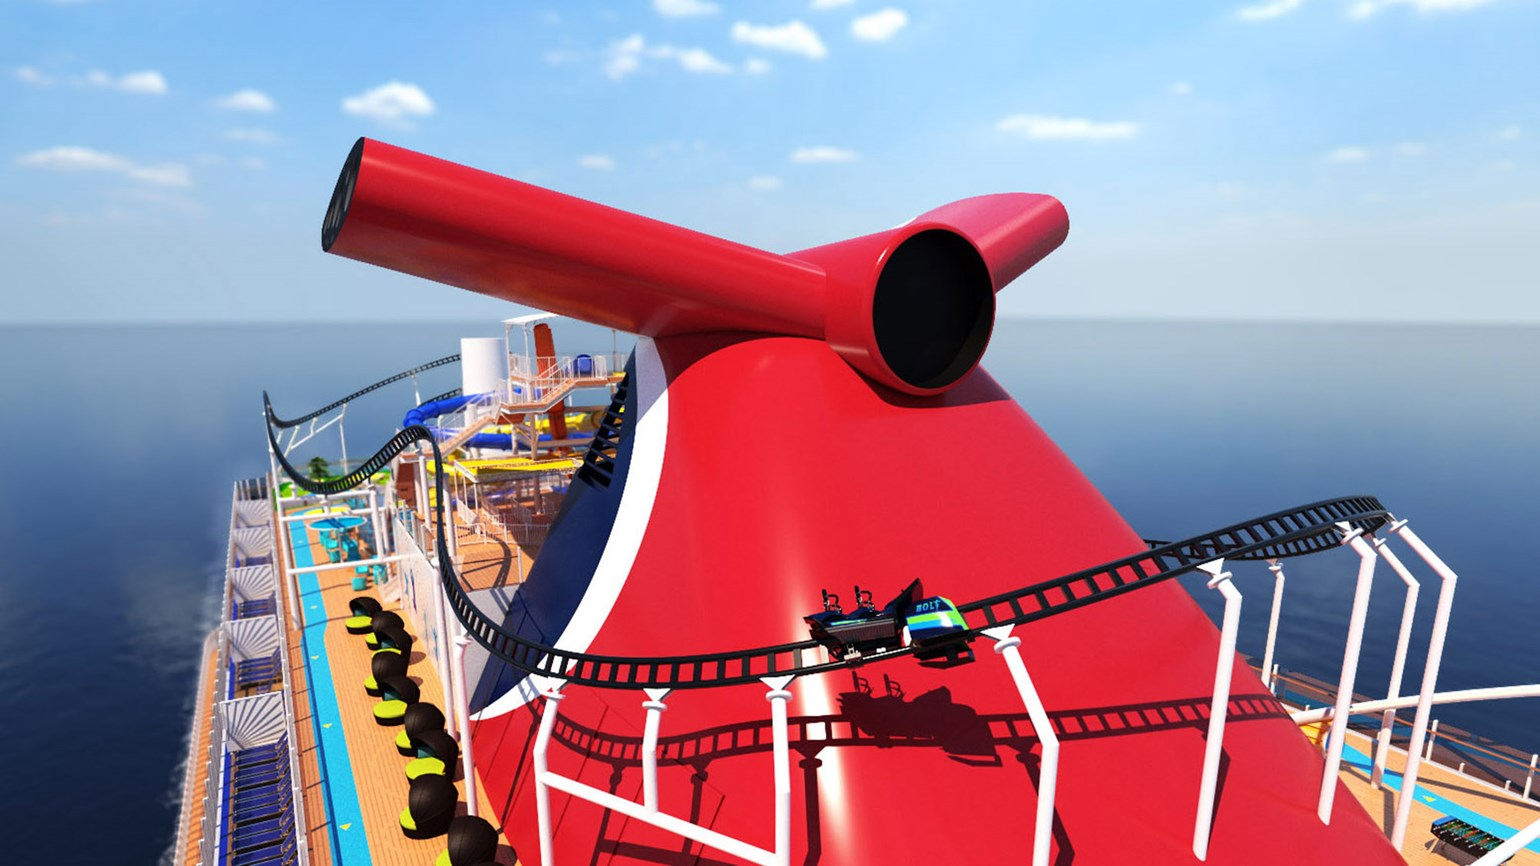 Carnival ship to have roller coaster